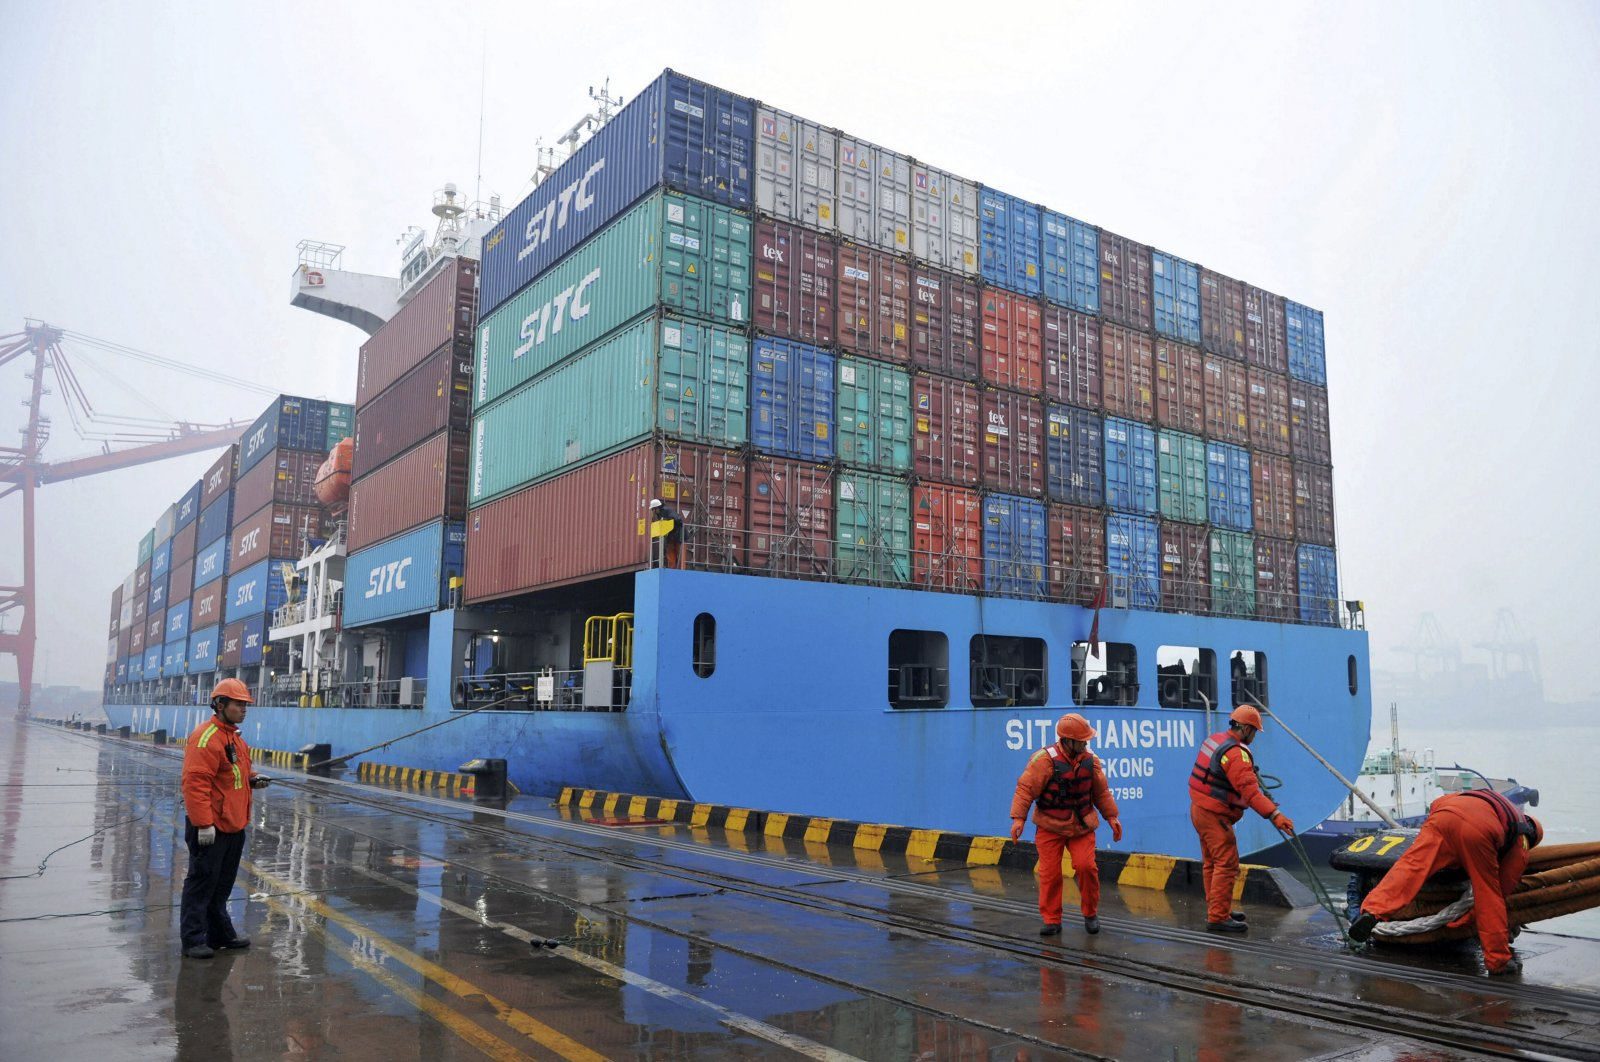 In this file photo workers can be seen mooring a container ship at a port in Qingdao in East China's Shandong province, Jan. 11, 2019. (AP Photo)